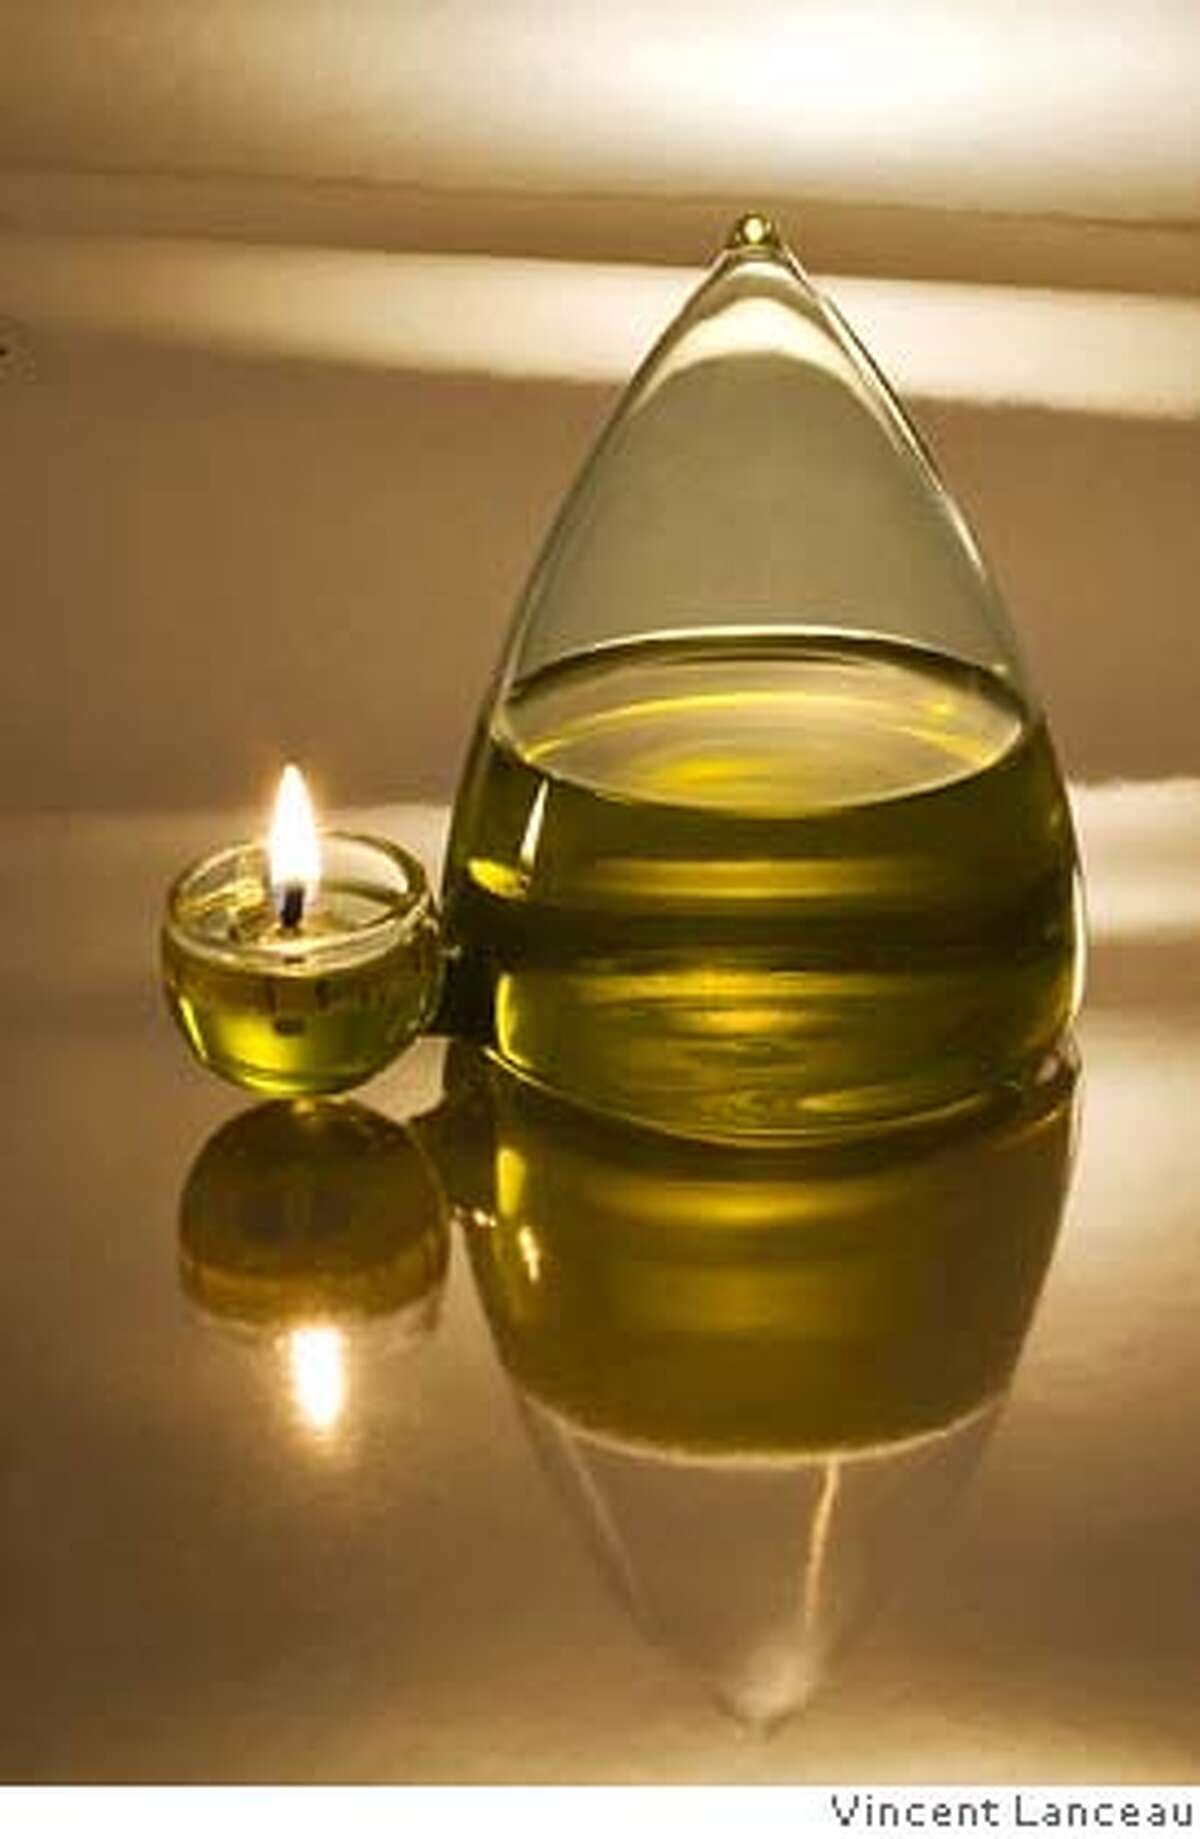 . It's a handout jpeg of an olive oil-burning lamp by Oliviers and Co.